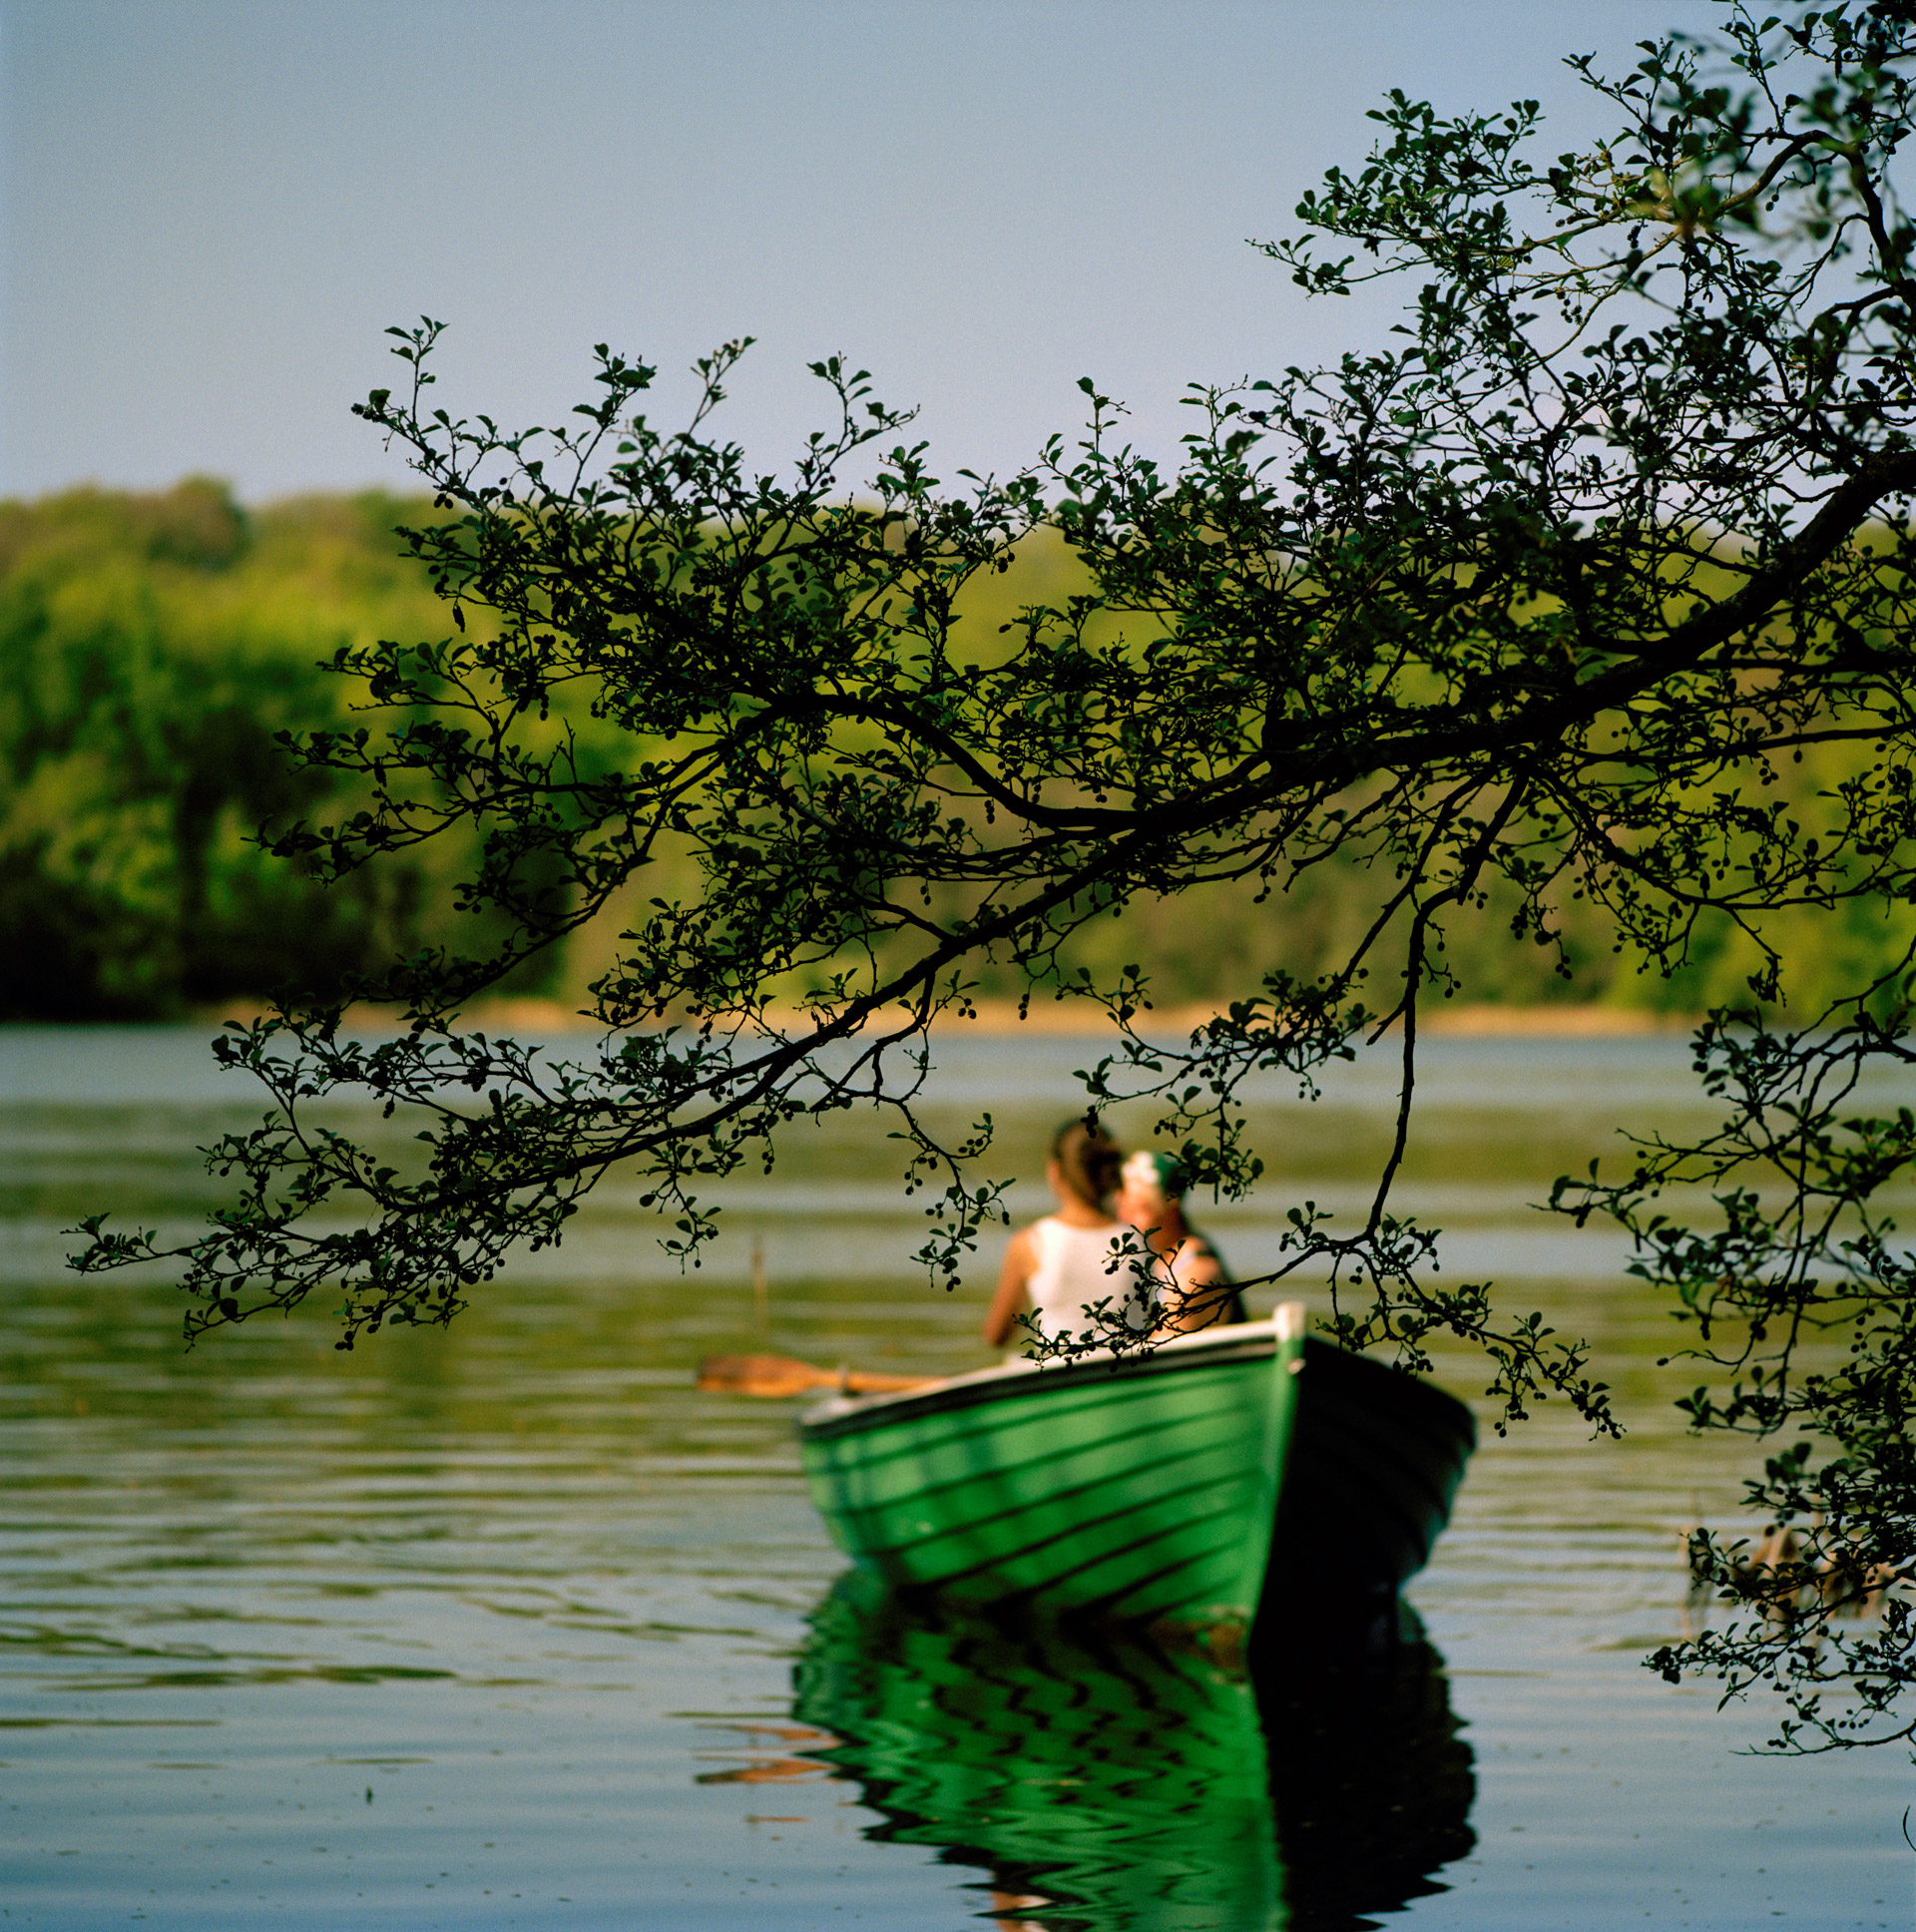 A couple in a rowing boat on Bagsværd Lake